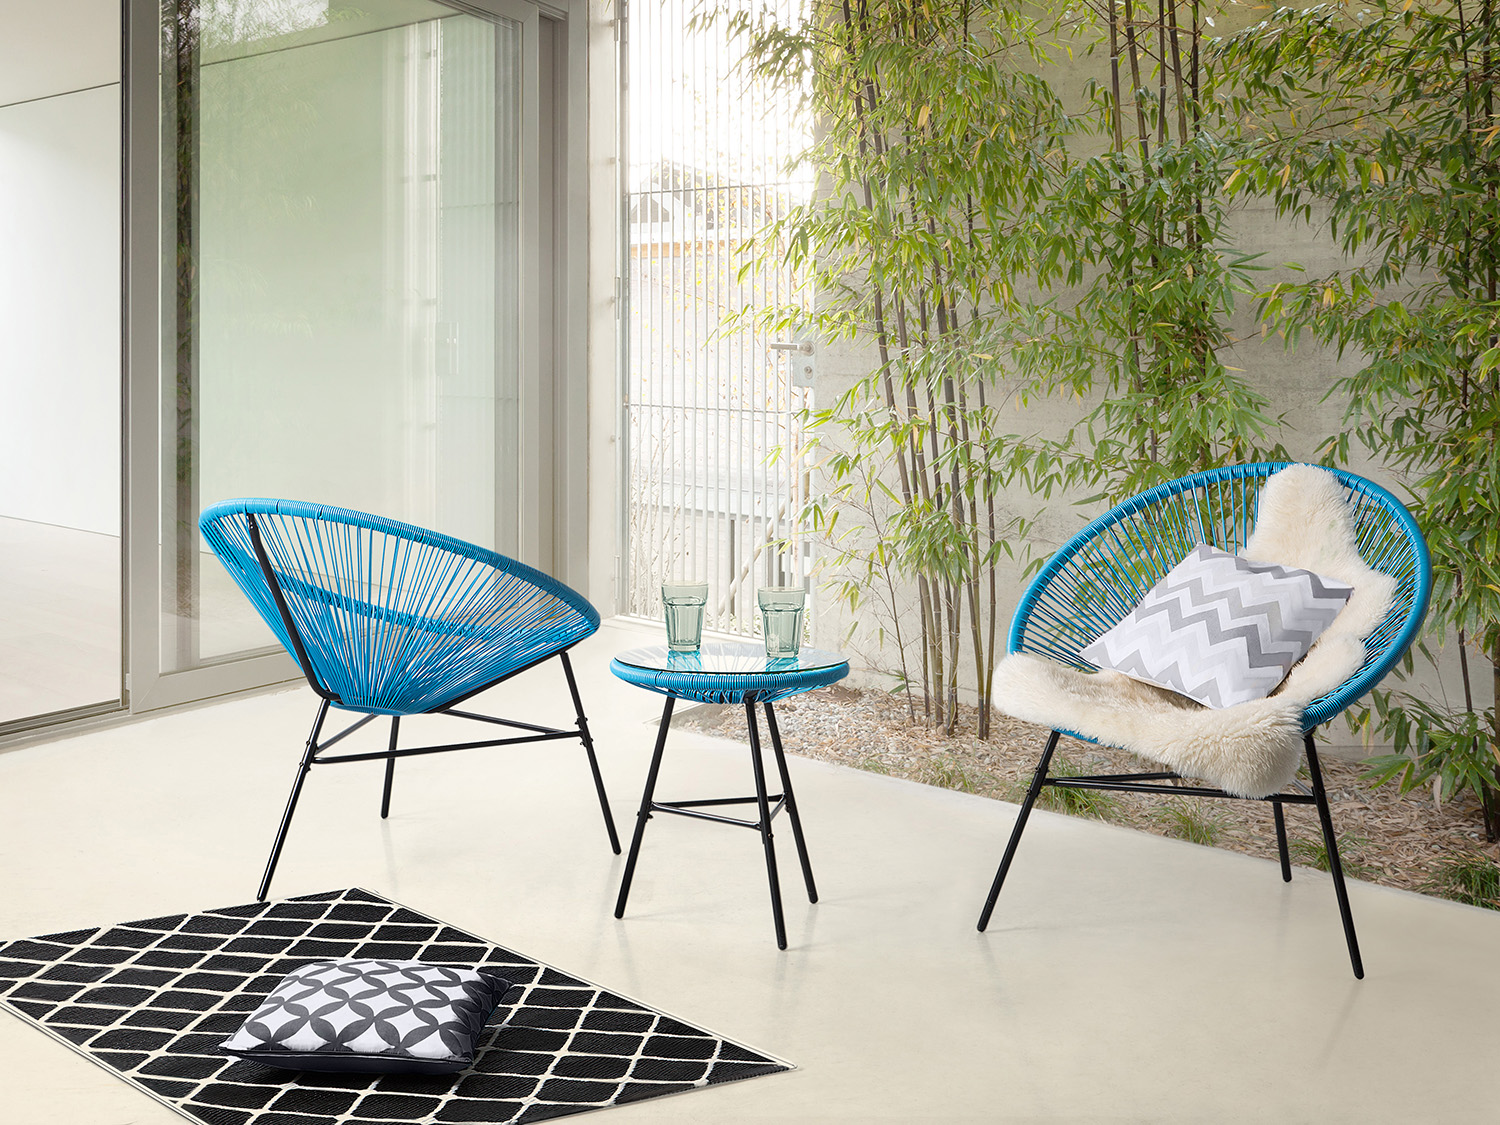 Garden Bistro Set Table And 2 Chairs Mexican Chair Weave Pattern Blue EBay